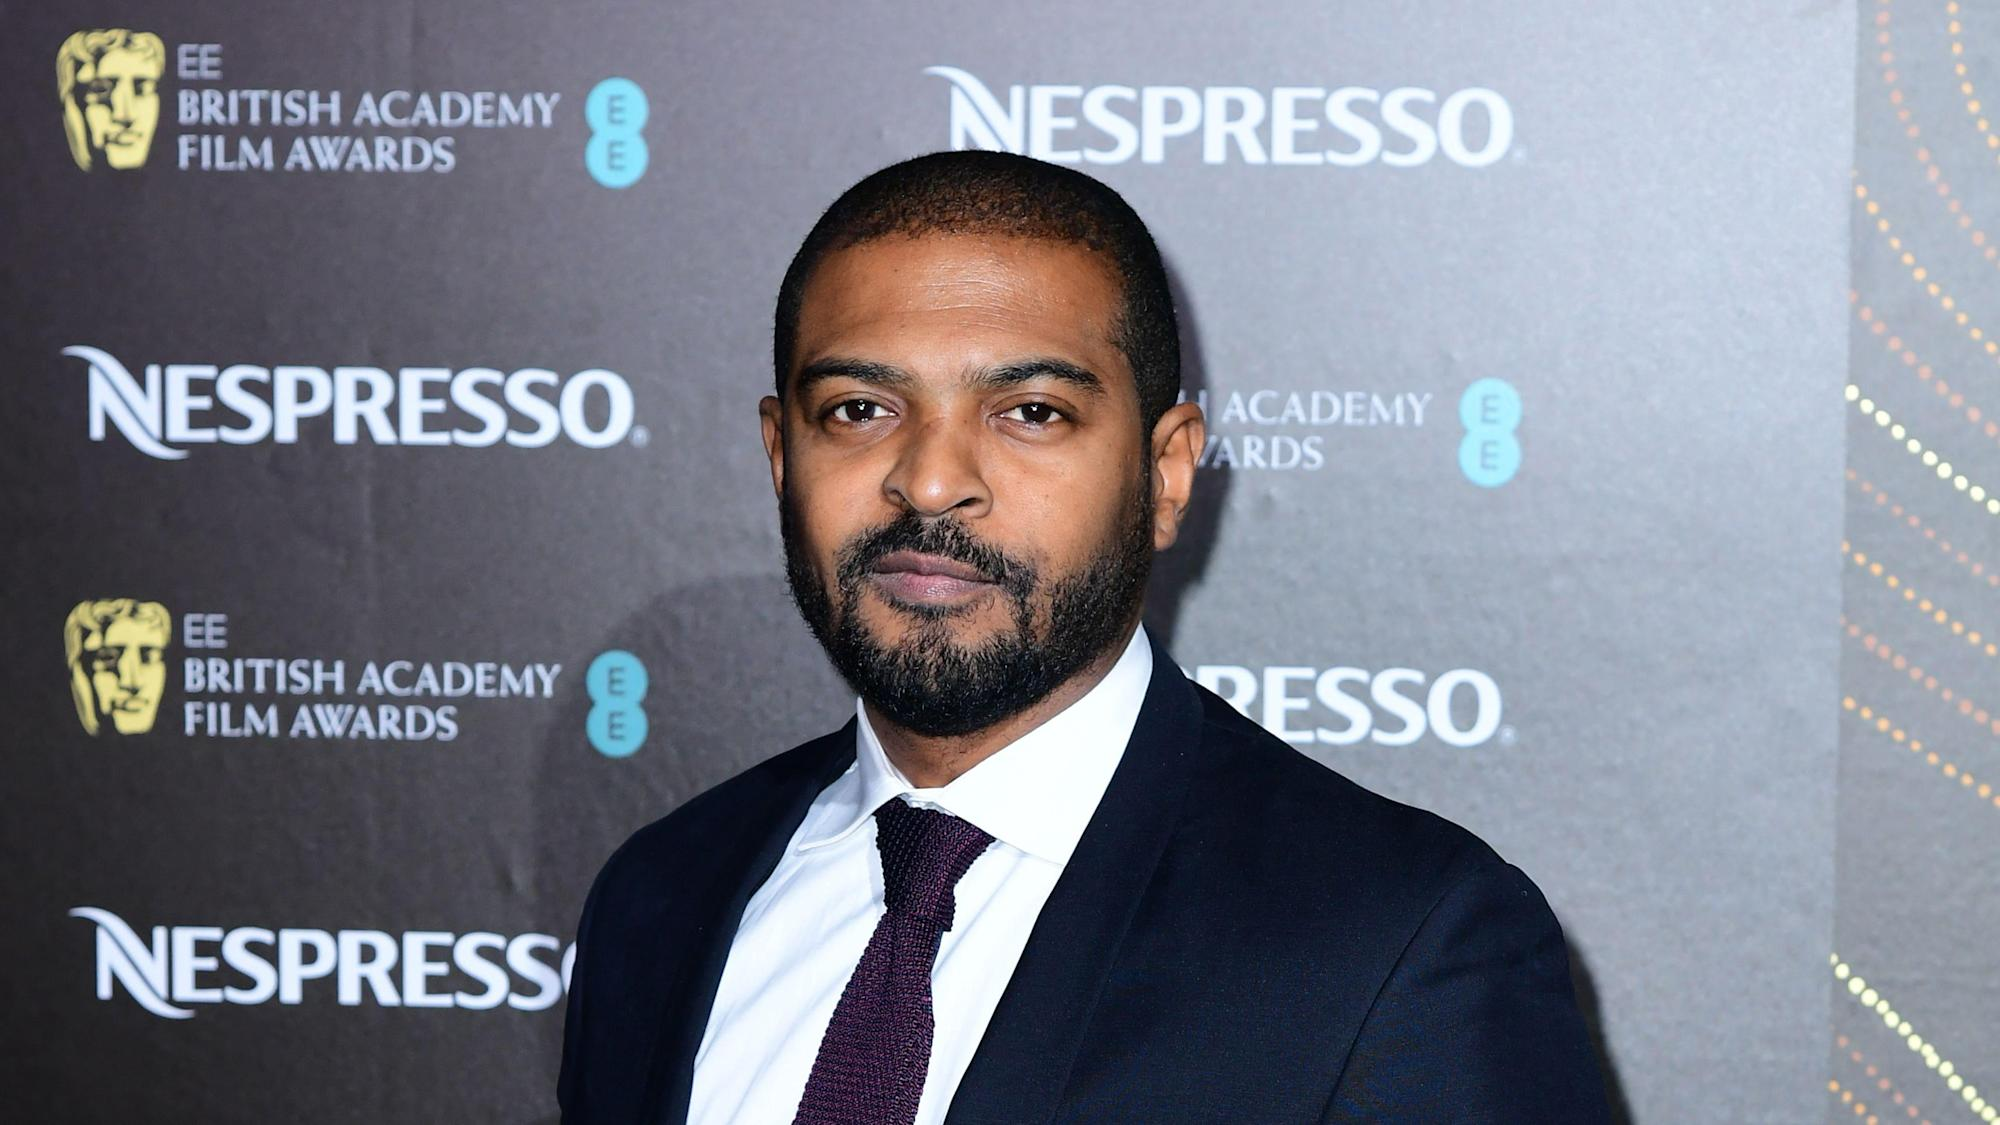 Bafta 'spent two weeks deciding how to respond to claims against Noel Clarke'